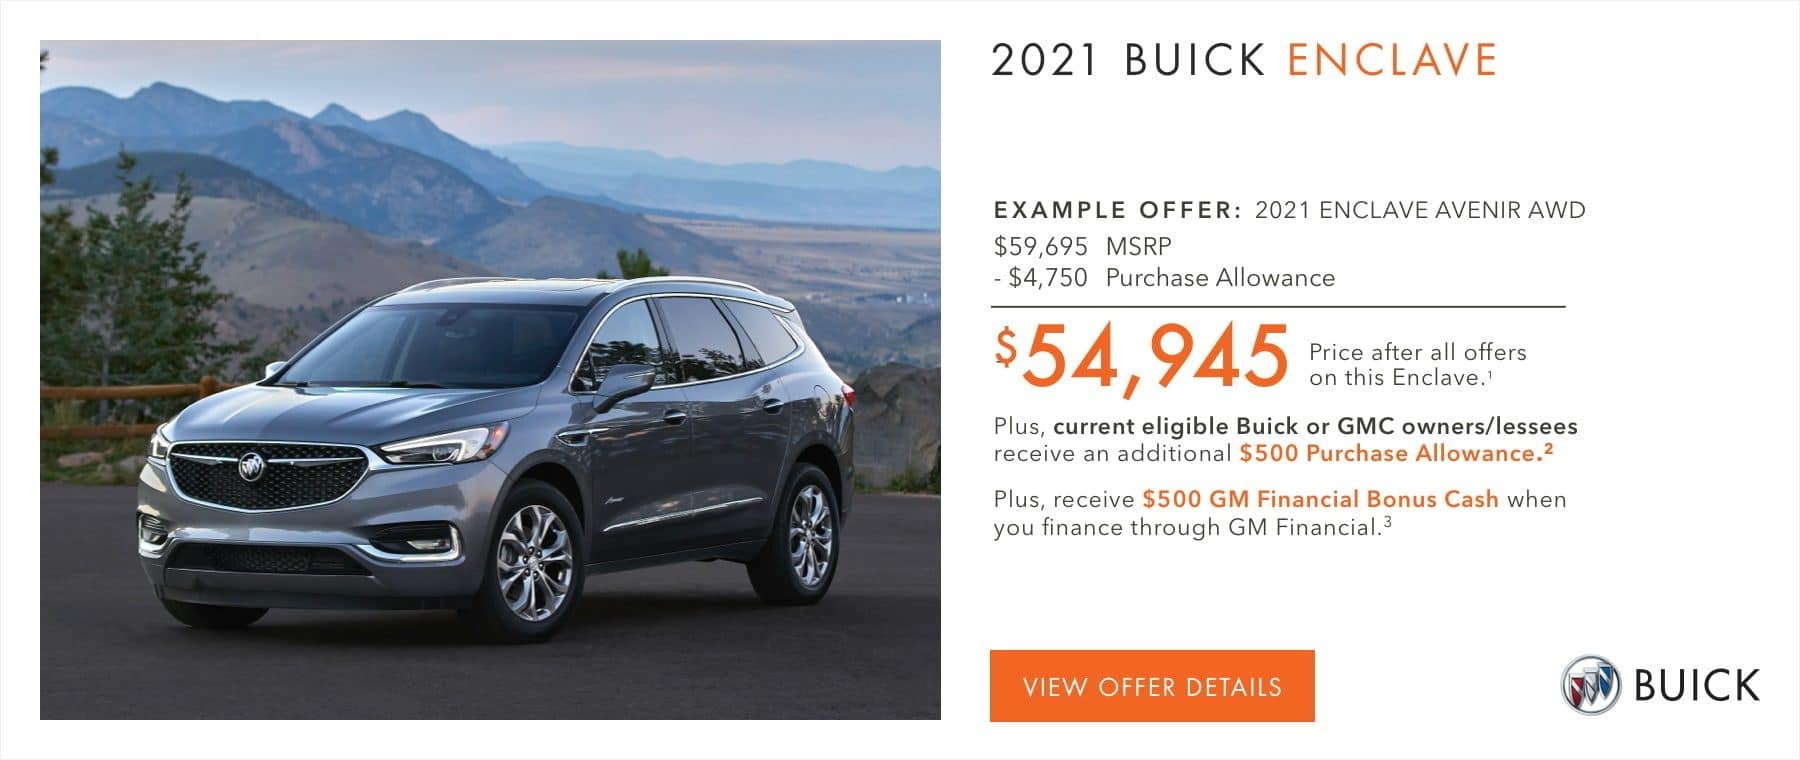 EXAMPLE OFFER: 2021 ENCLAVE AVENIR AWD $59,695 MSRP -$4,750 Purchase Allowance $54,945 Price after all offers on this Enclave.1 Plus, current eligible Buick or GMC owners/lessees receive an additional $500 Purchase Allowance.2 Plus, receive $500 GM Financial Bonus Cash when you finance through GM Financial.3